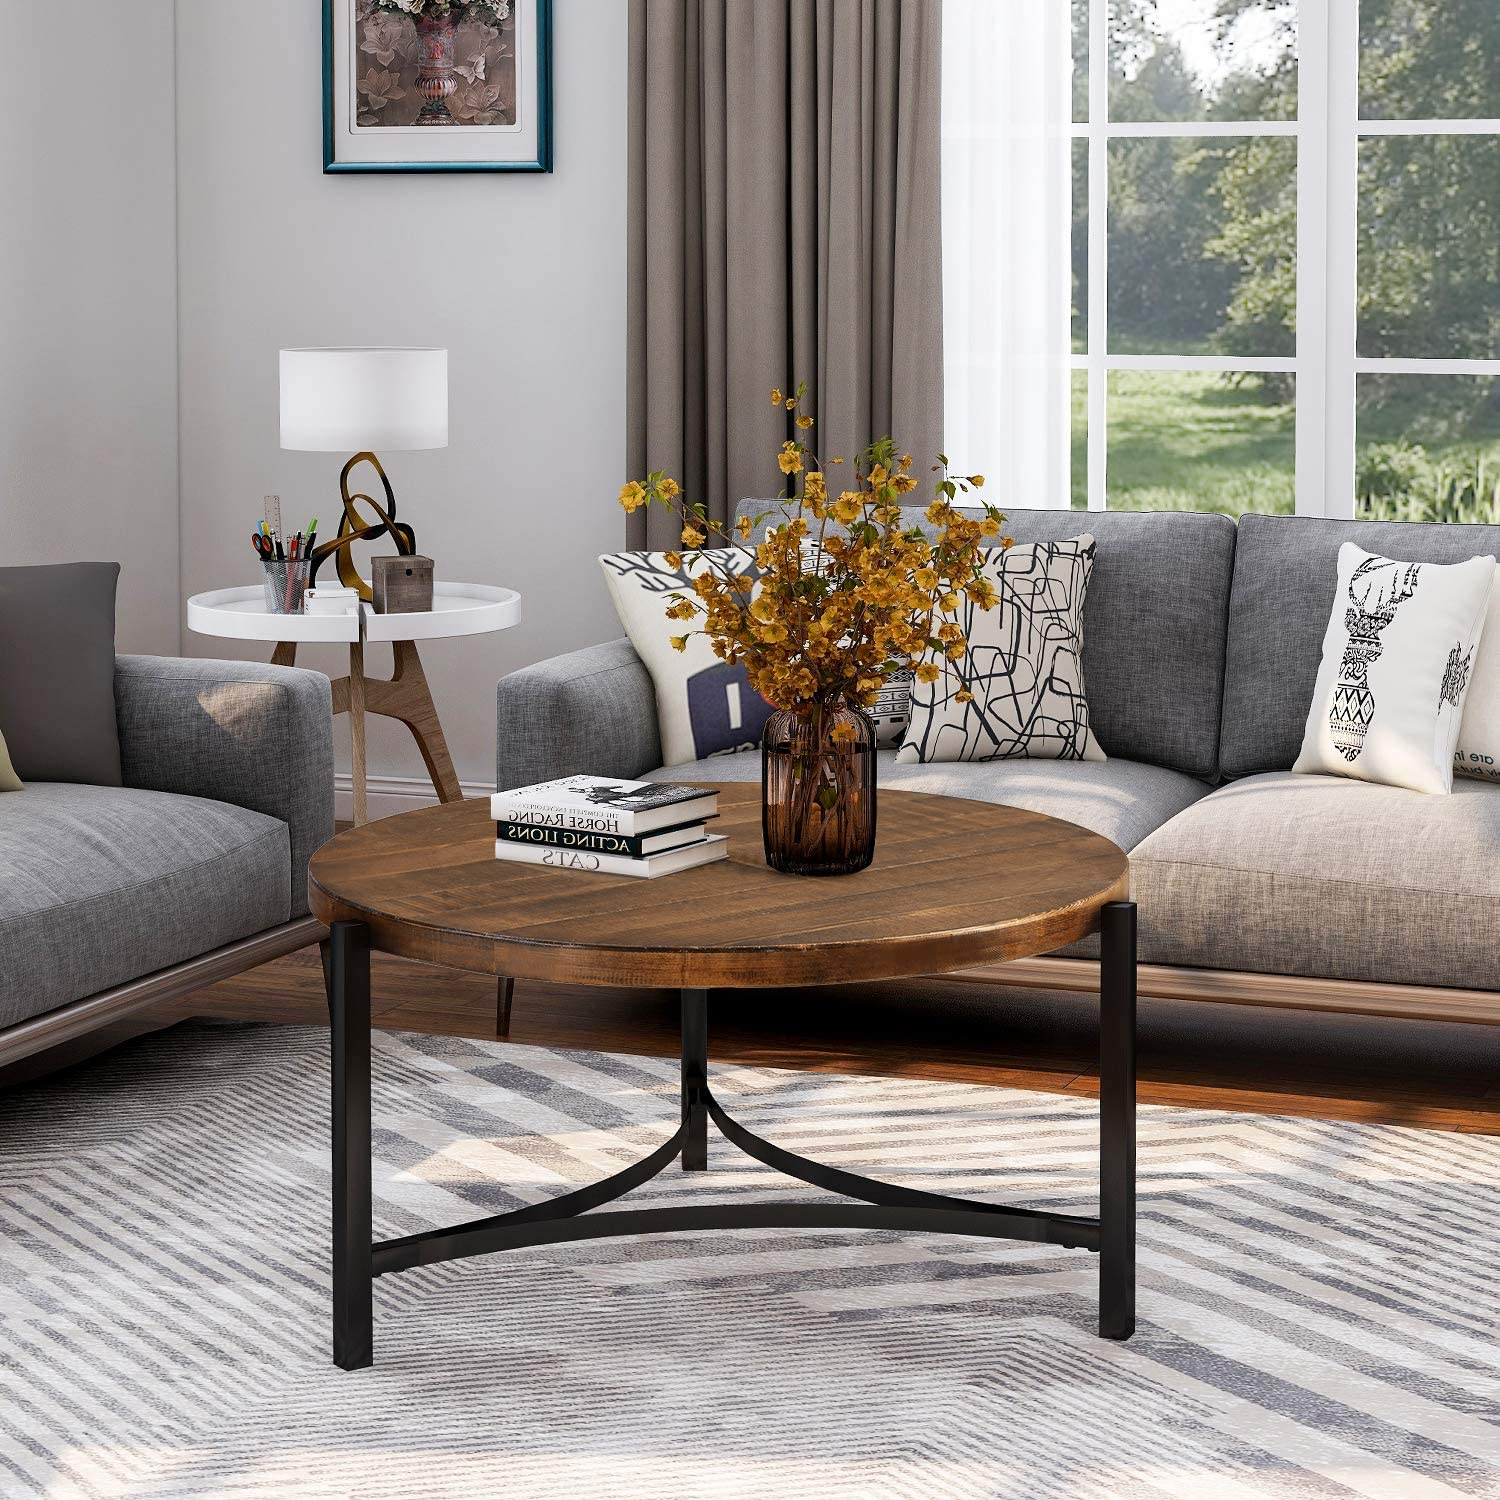 Round Coffee Table Tea Table Round Coffee Table for Living Room with Metal Legs